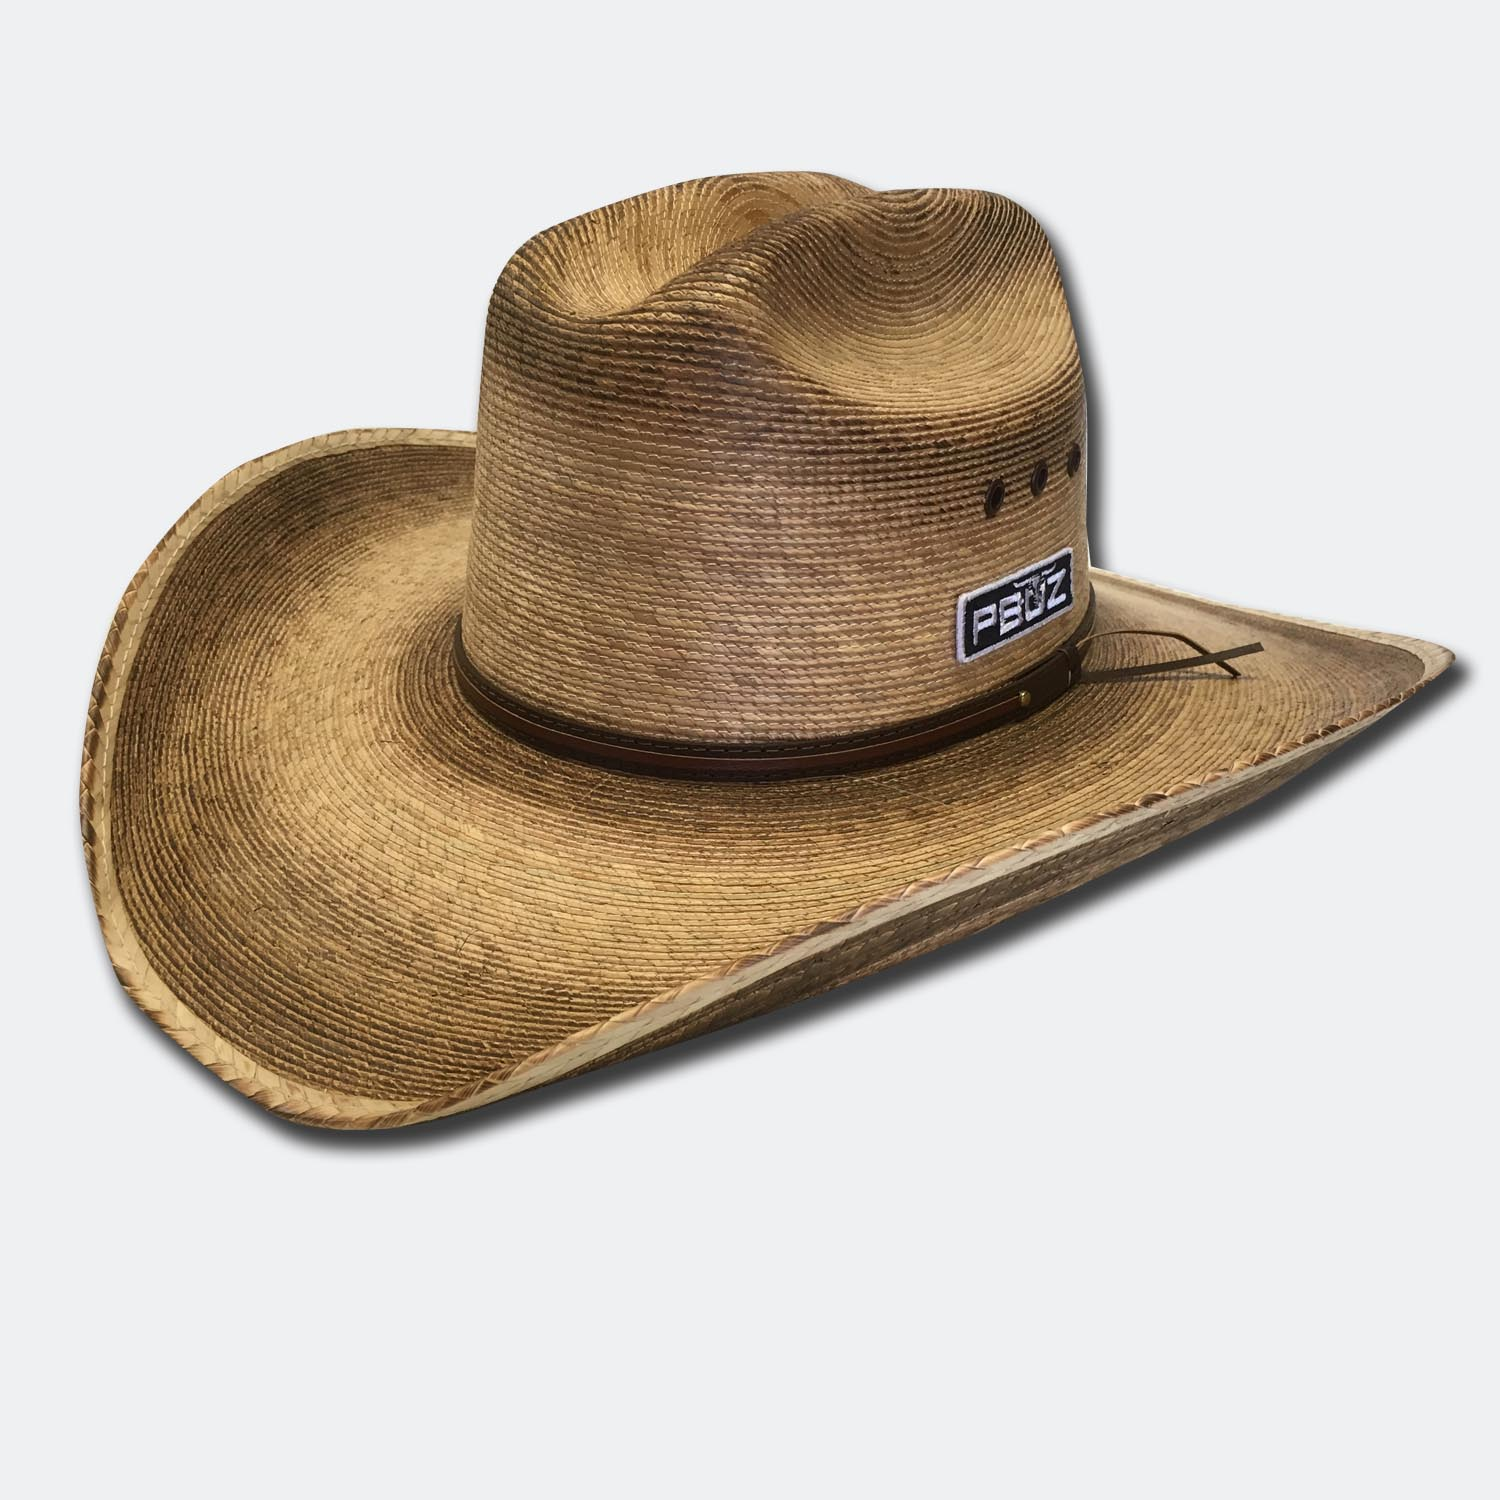 25bbf8044 Cattleman Palm Straw Cowboy Hat